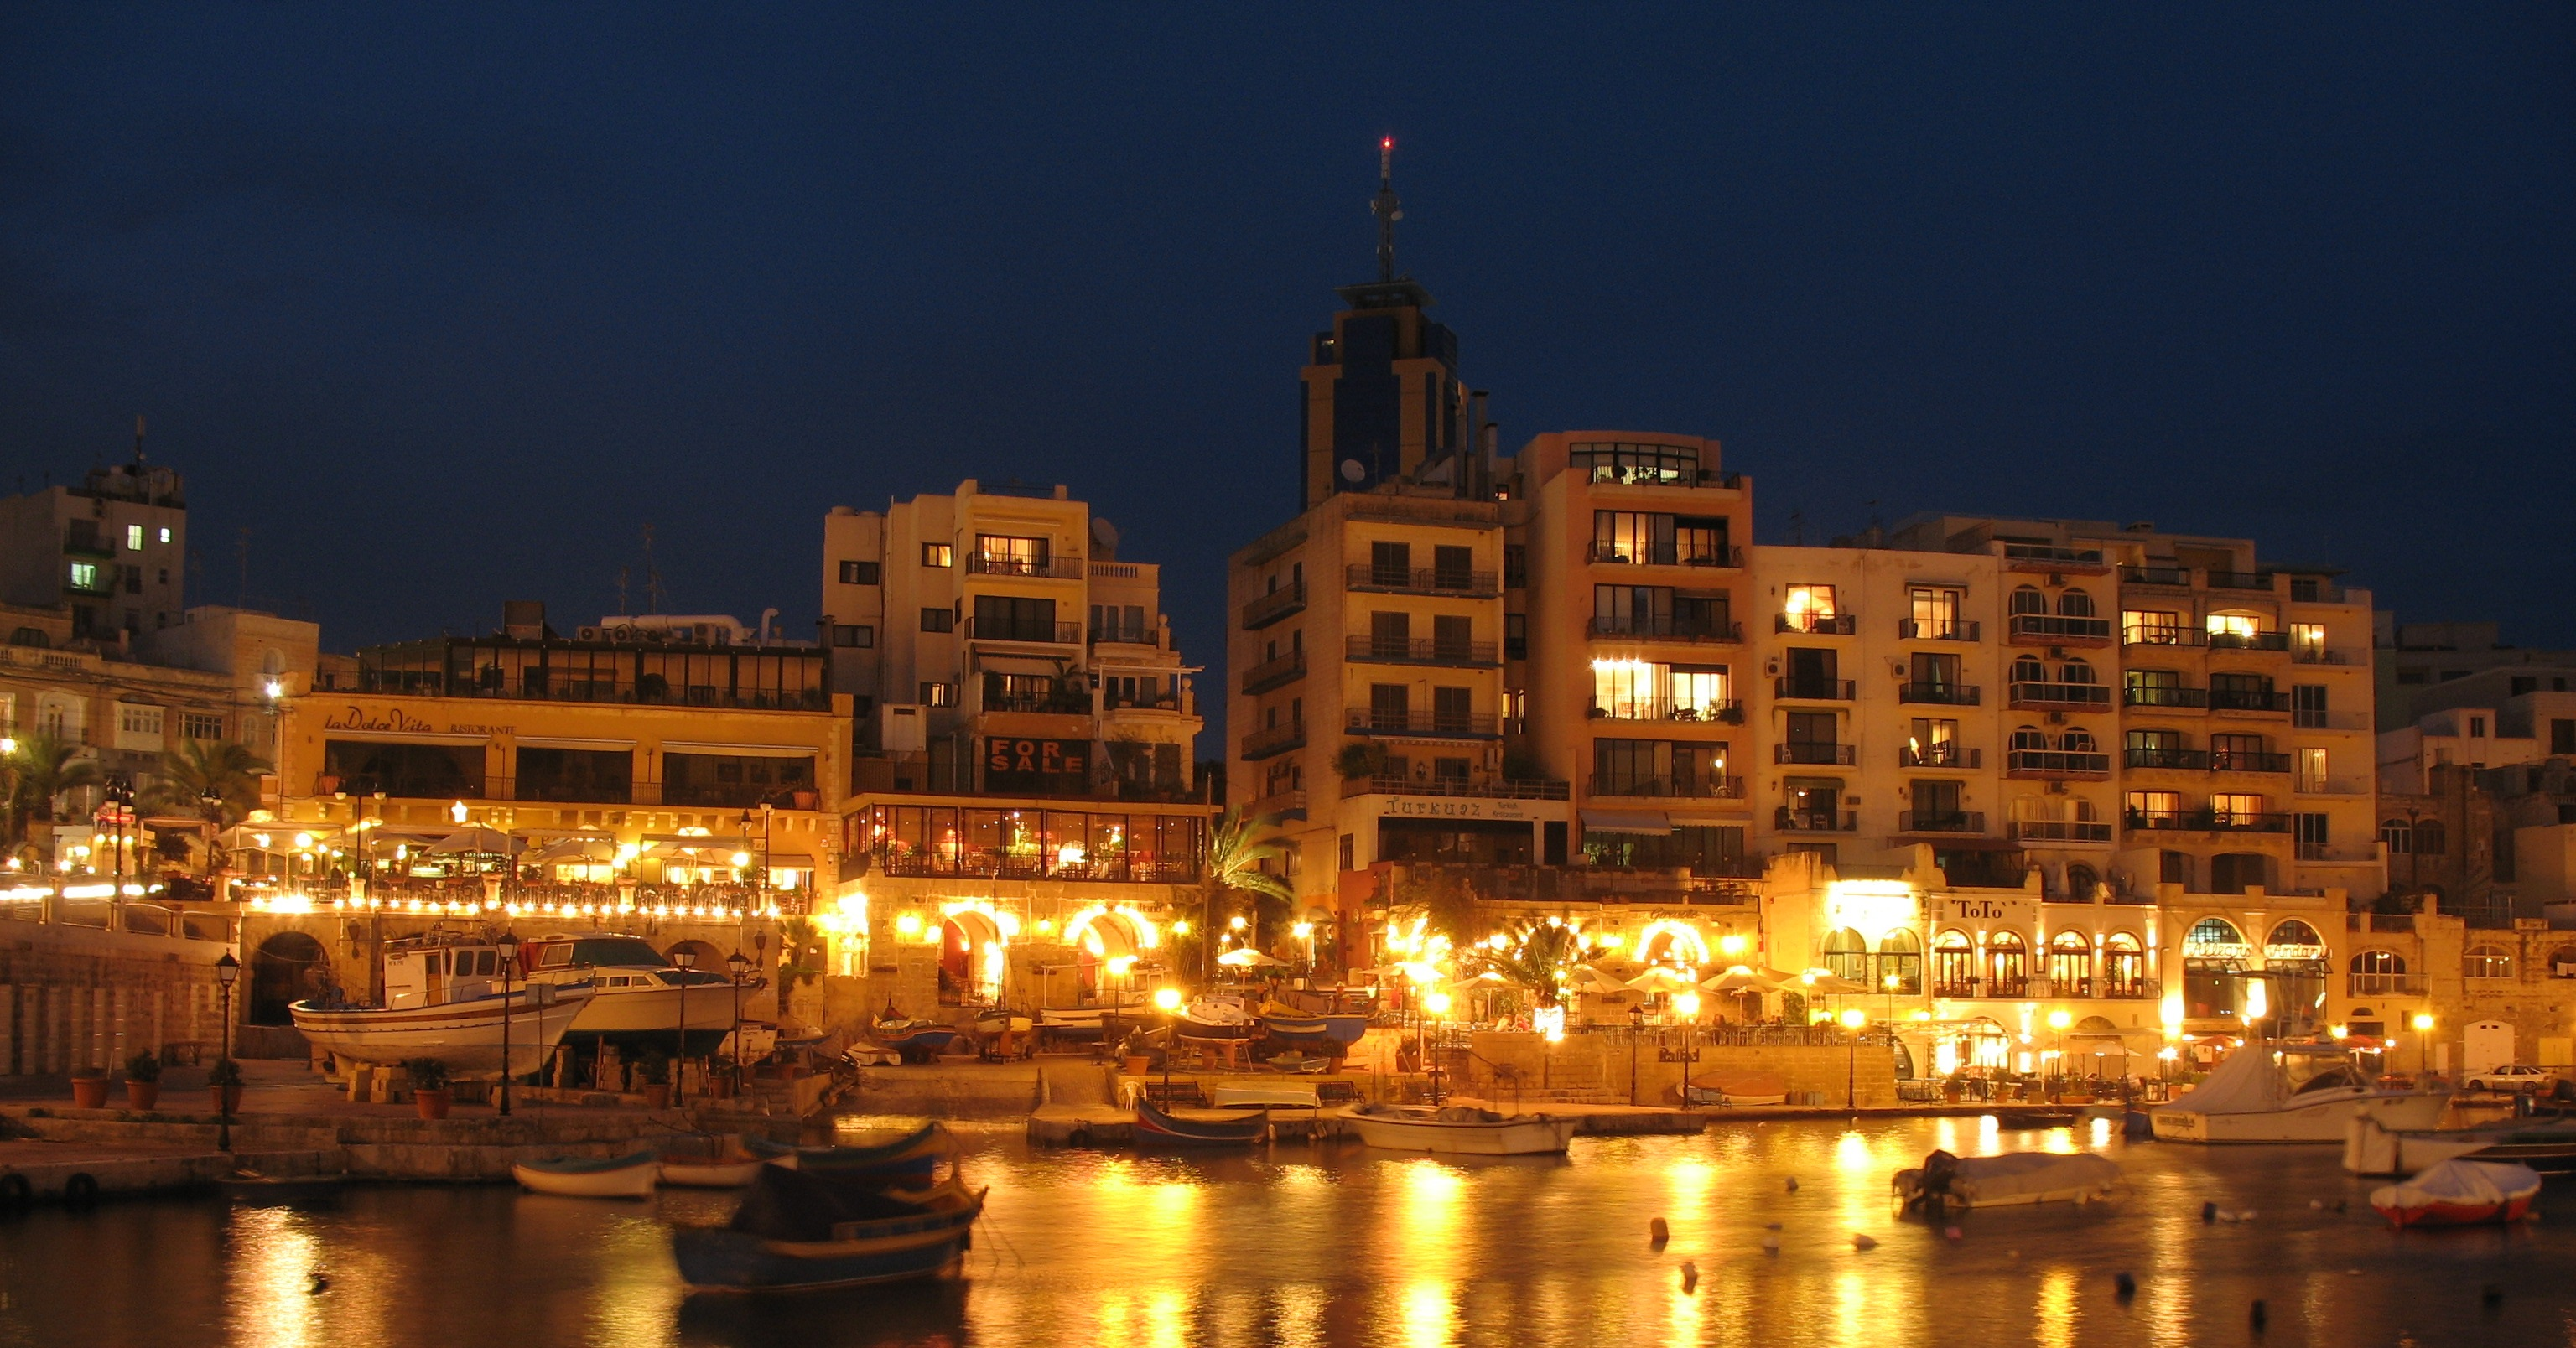 St. Julians at Night